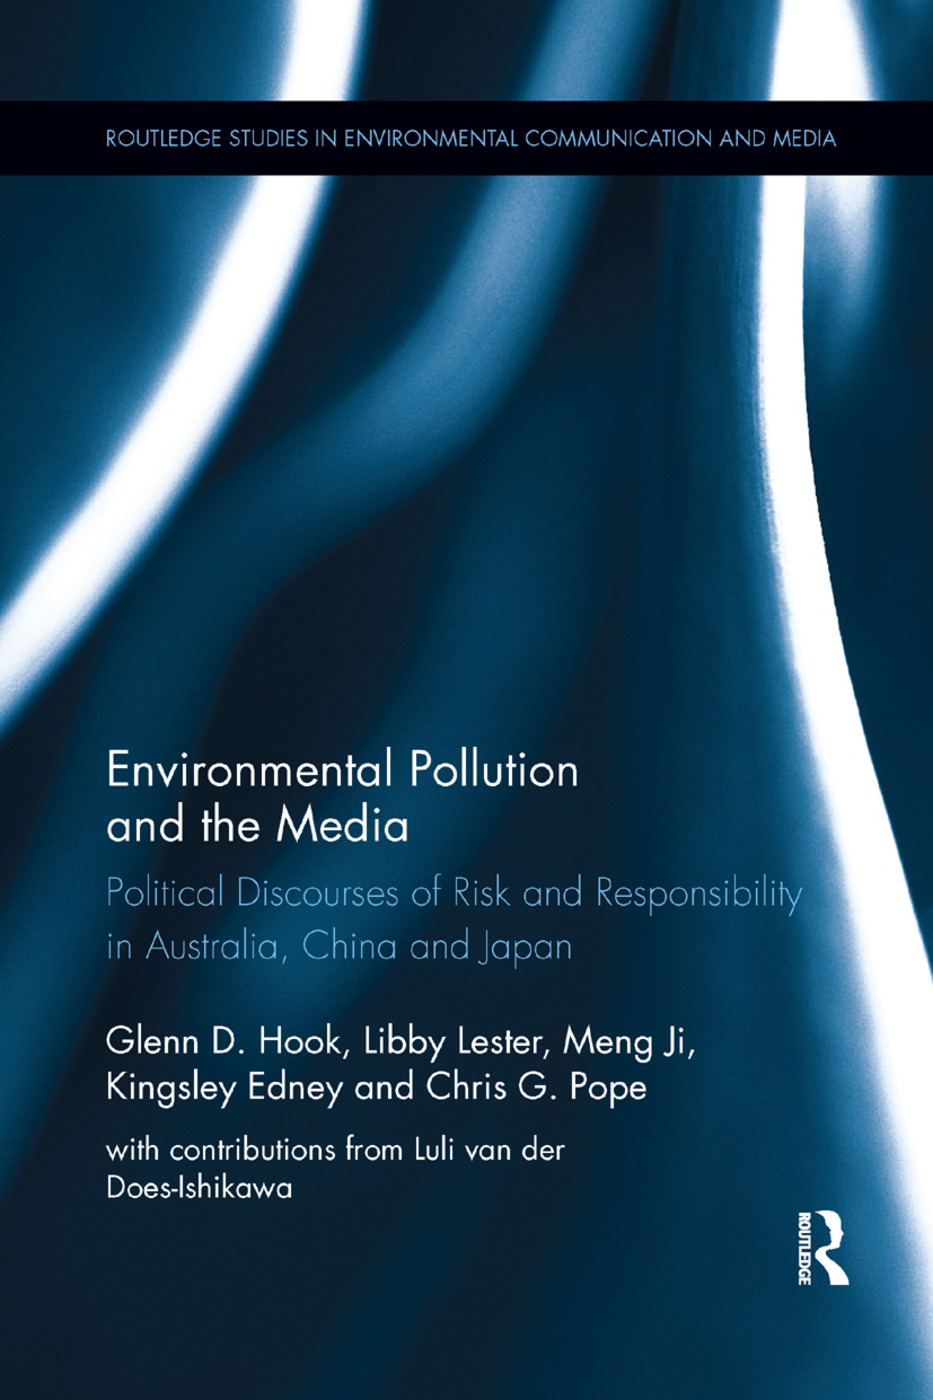 Environmental Pollution and the Media: Political Discourses of Risk and Responsibility in Australia, China and Japan book cover